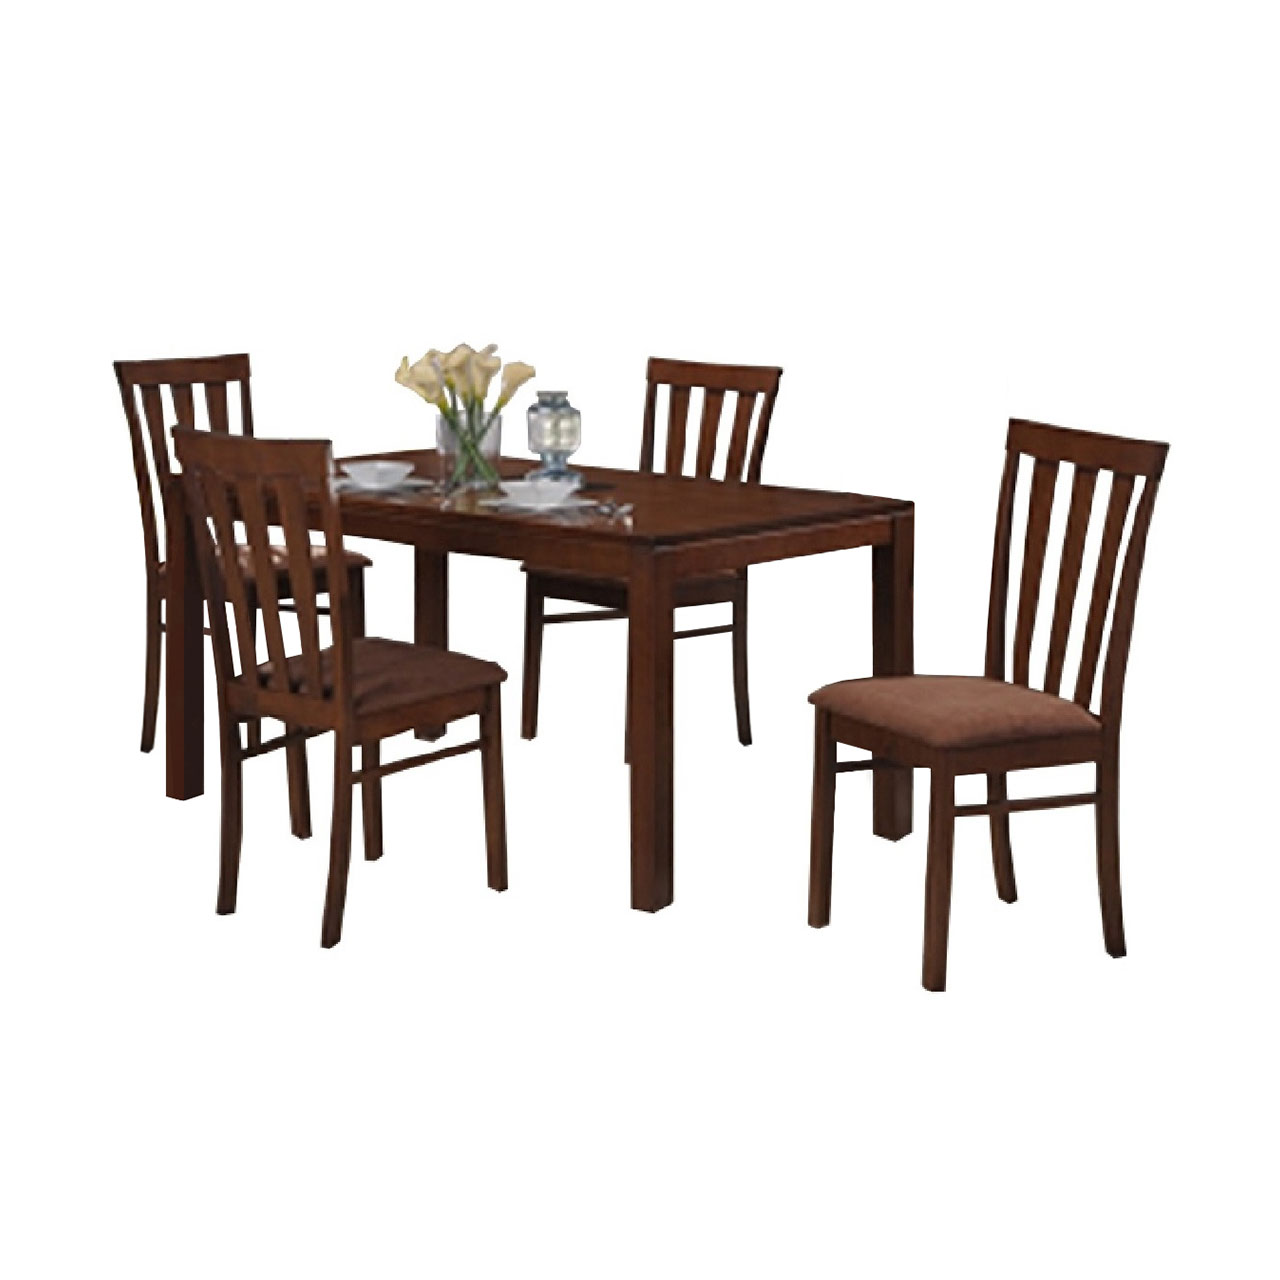 Darwin Dining Set Furniture Store Manila Philippines  : BARCELONA14 from www.urbanconcepts.ph size 1280 x 1280 jpeg 95kB